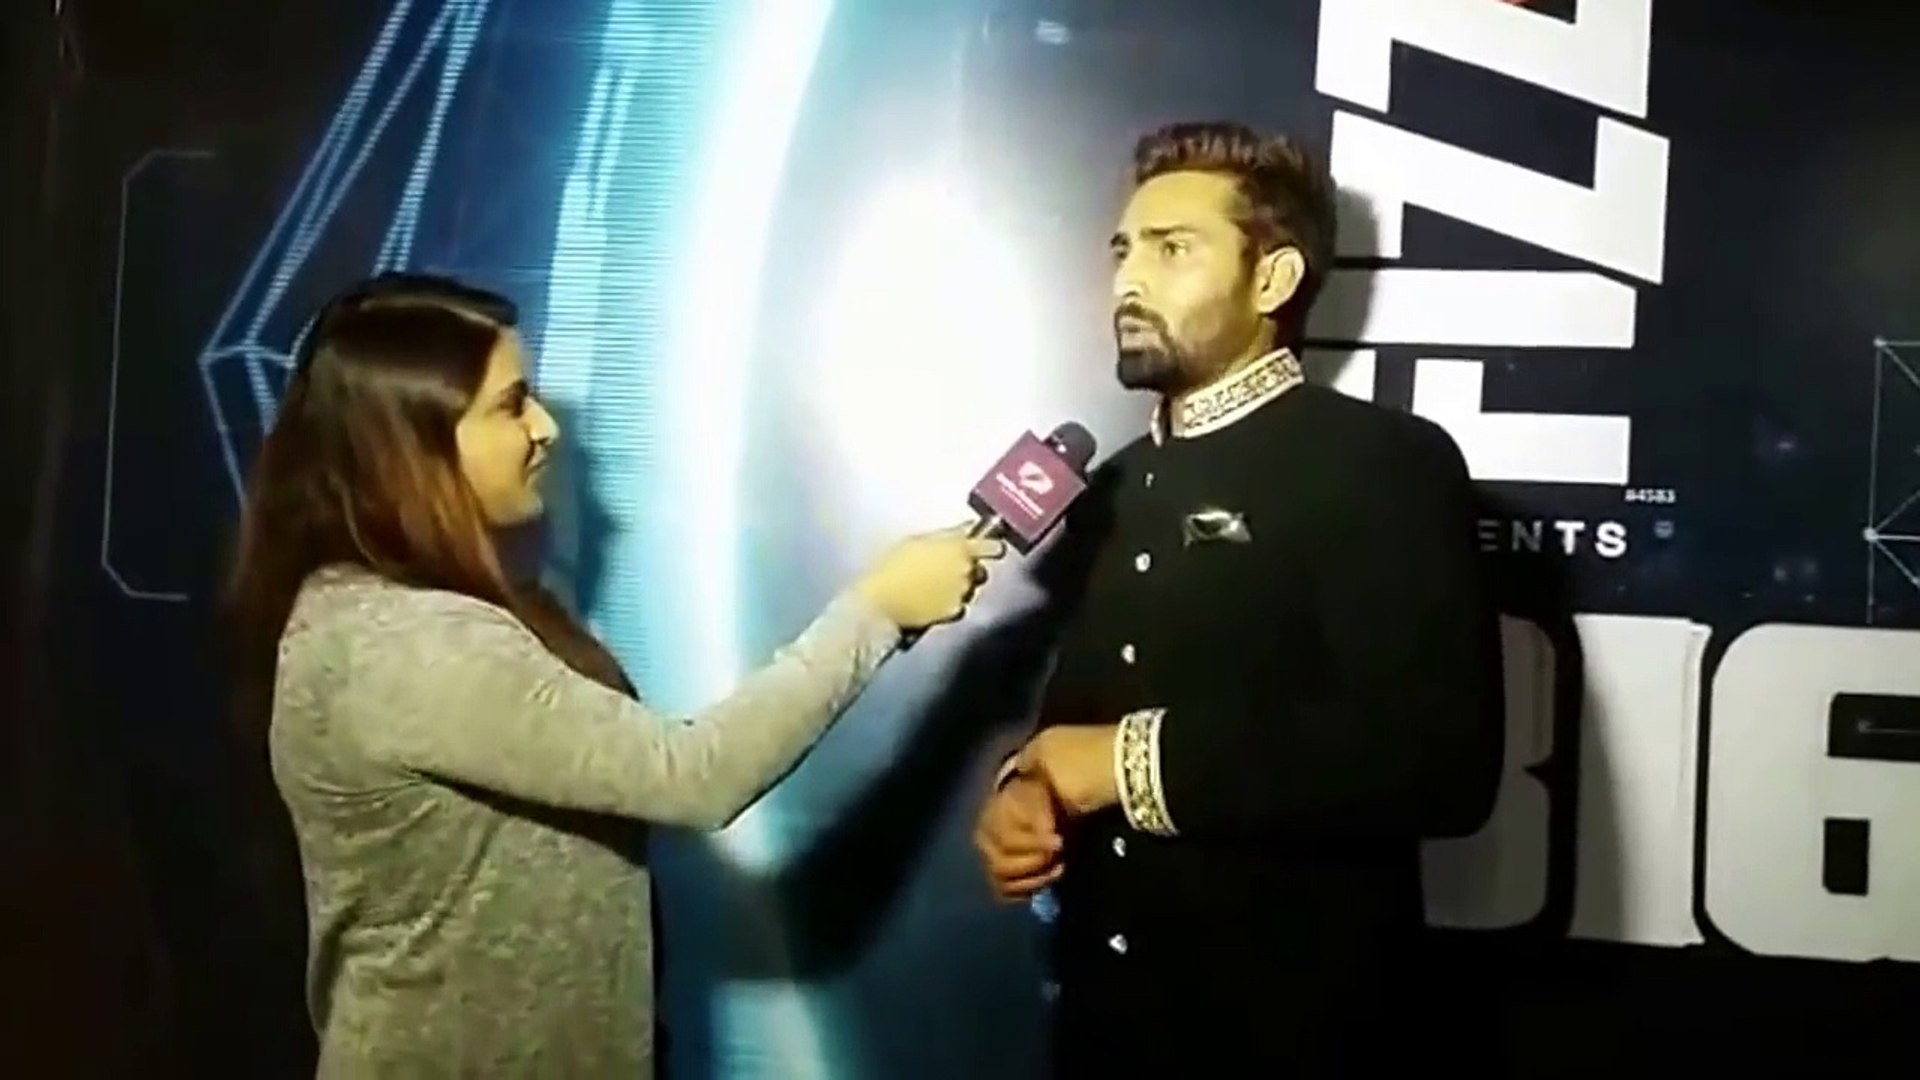 Manveer Gujar EXCLUSIVE INTERVIEW After Winning Bigg Boss 10